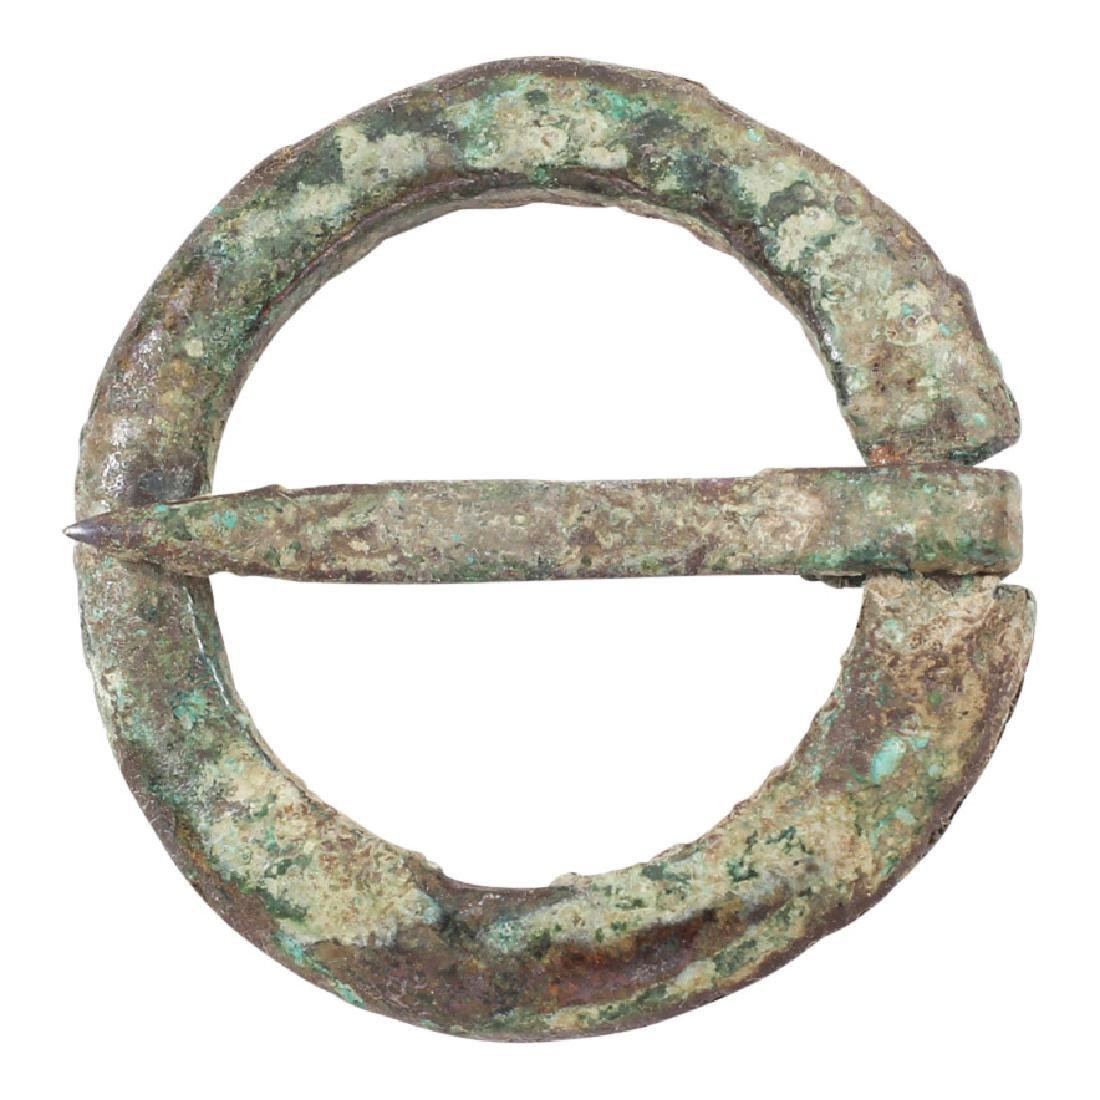 Viking Protective Brooch 9th-10th CENTURY AD